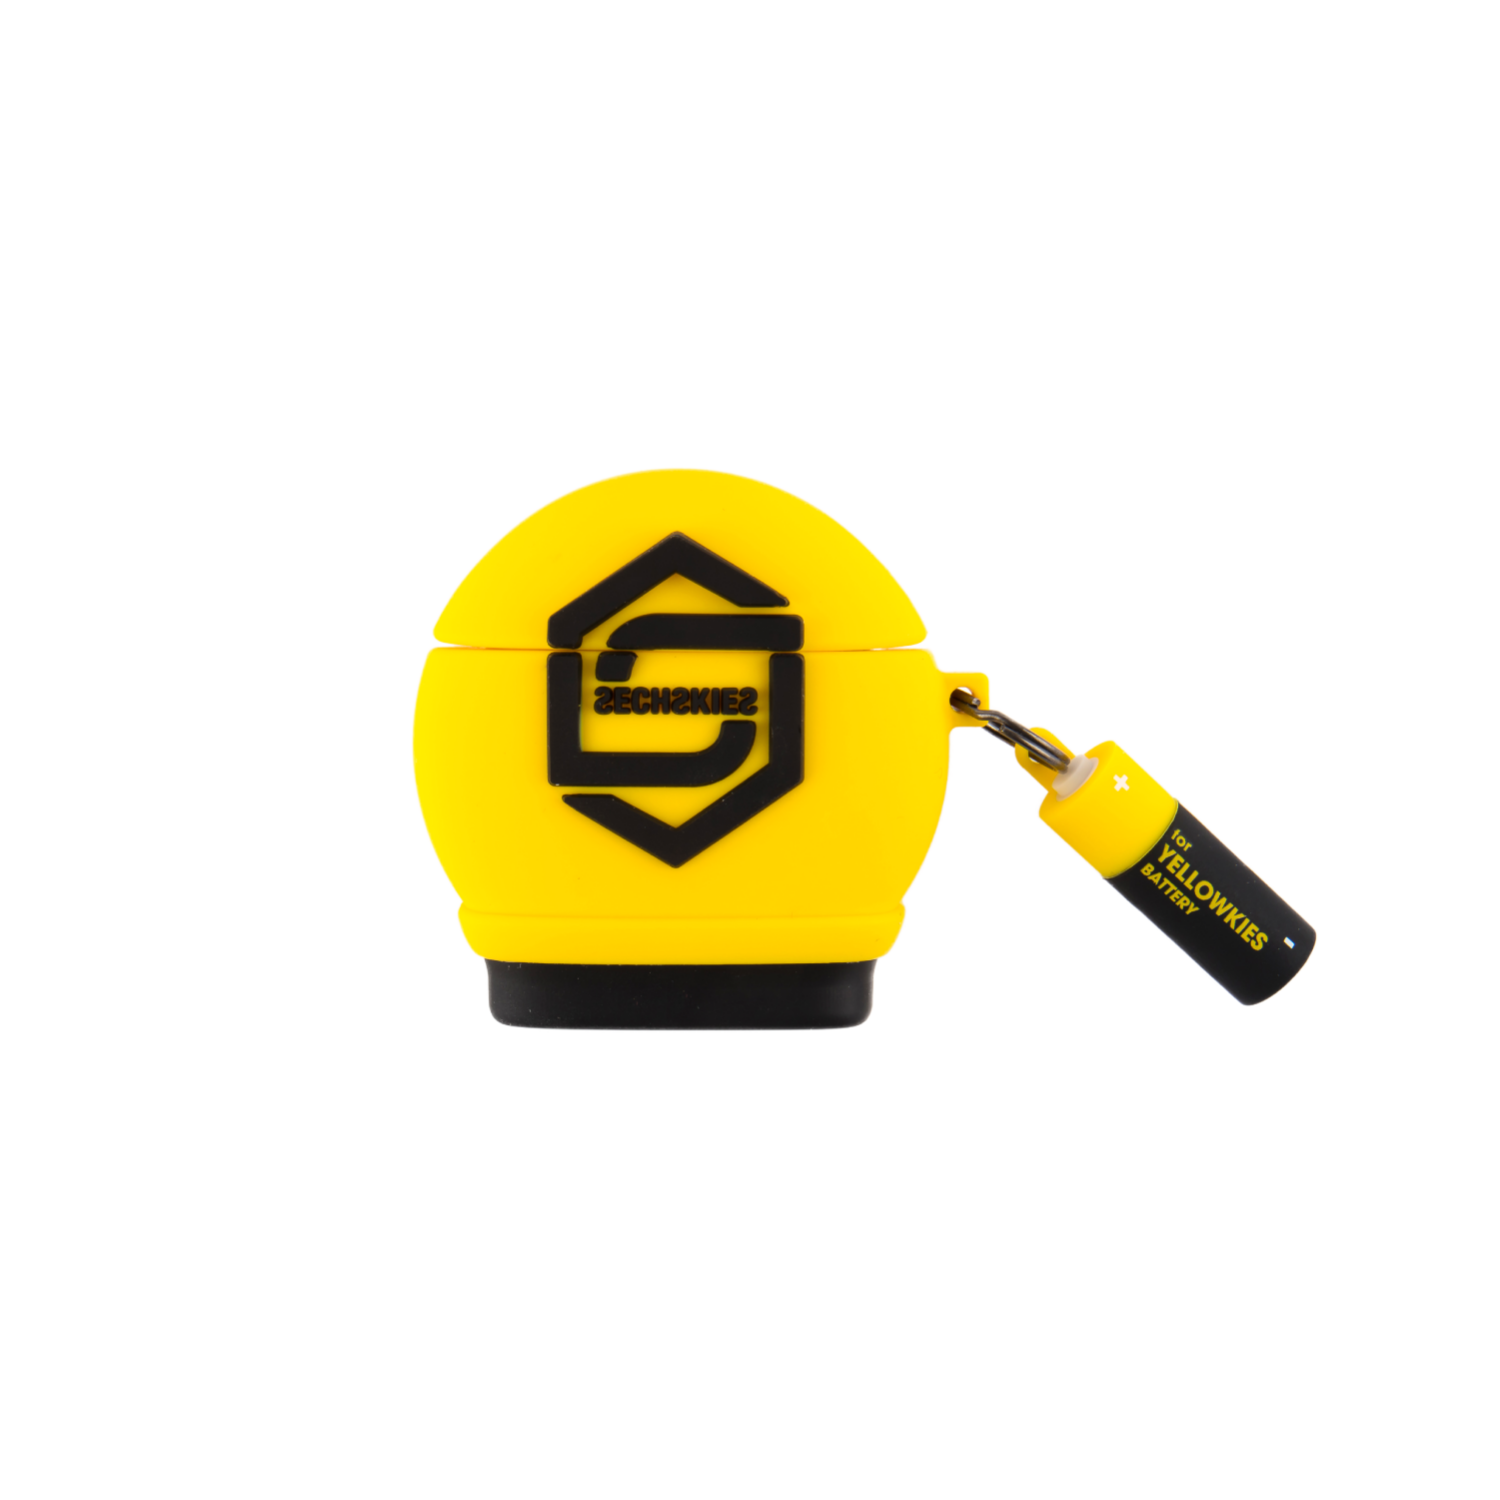 SECHSKIES AIRPODS SILICONE CASE SET